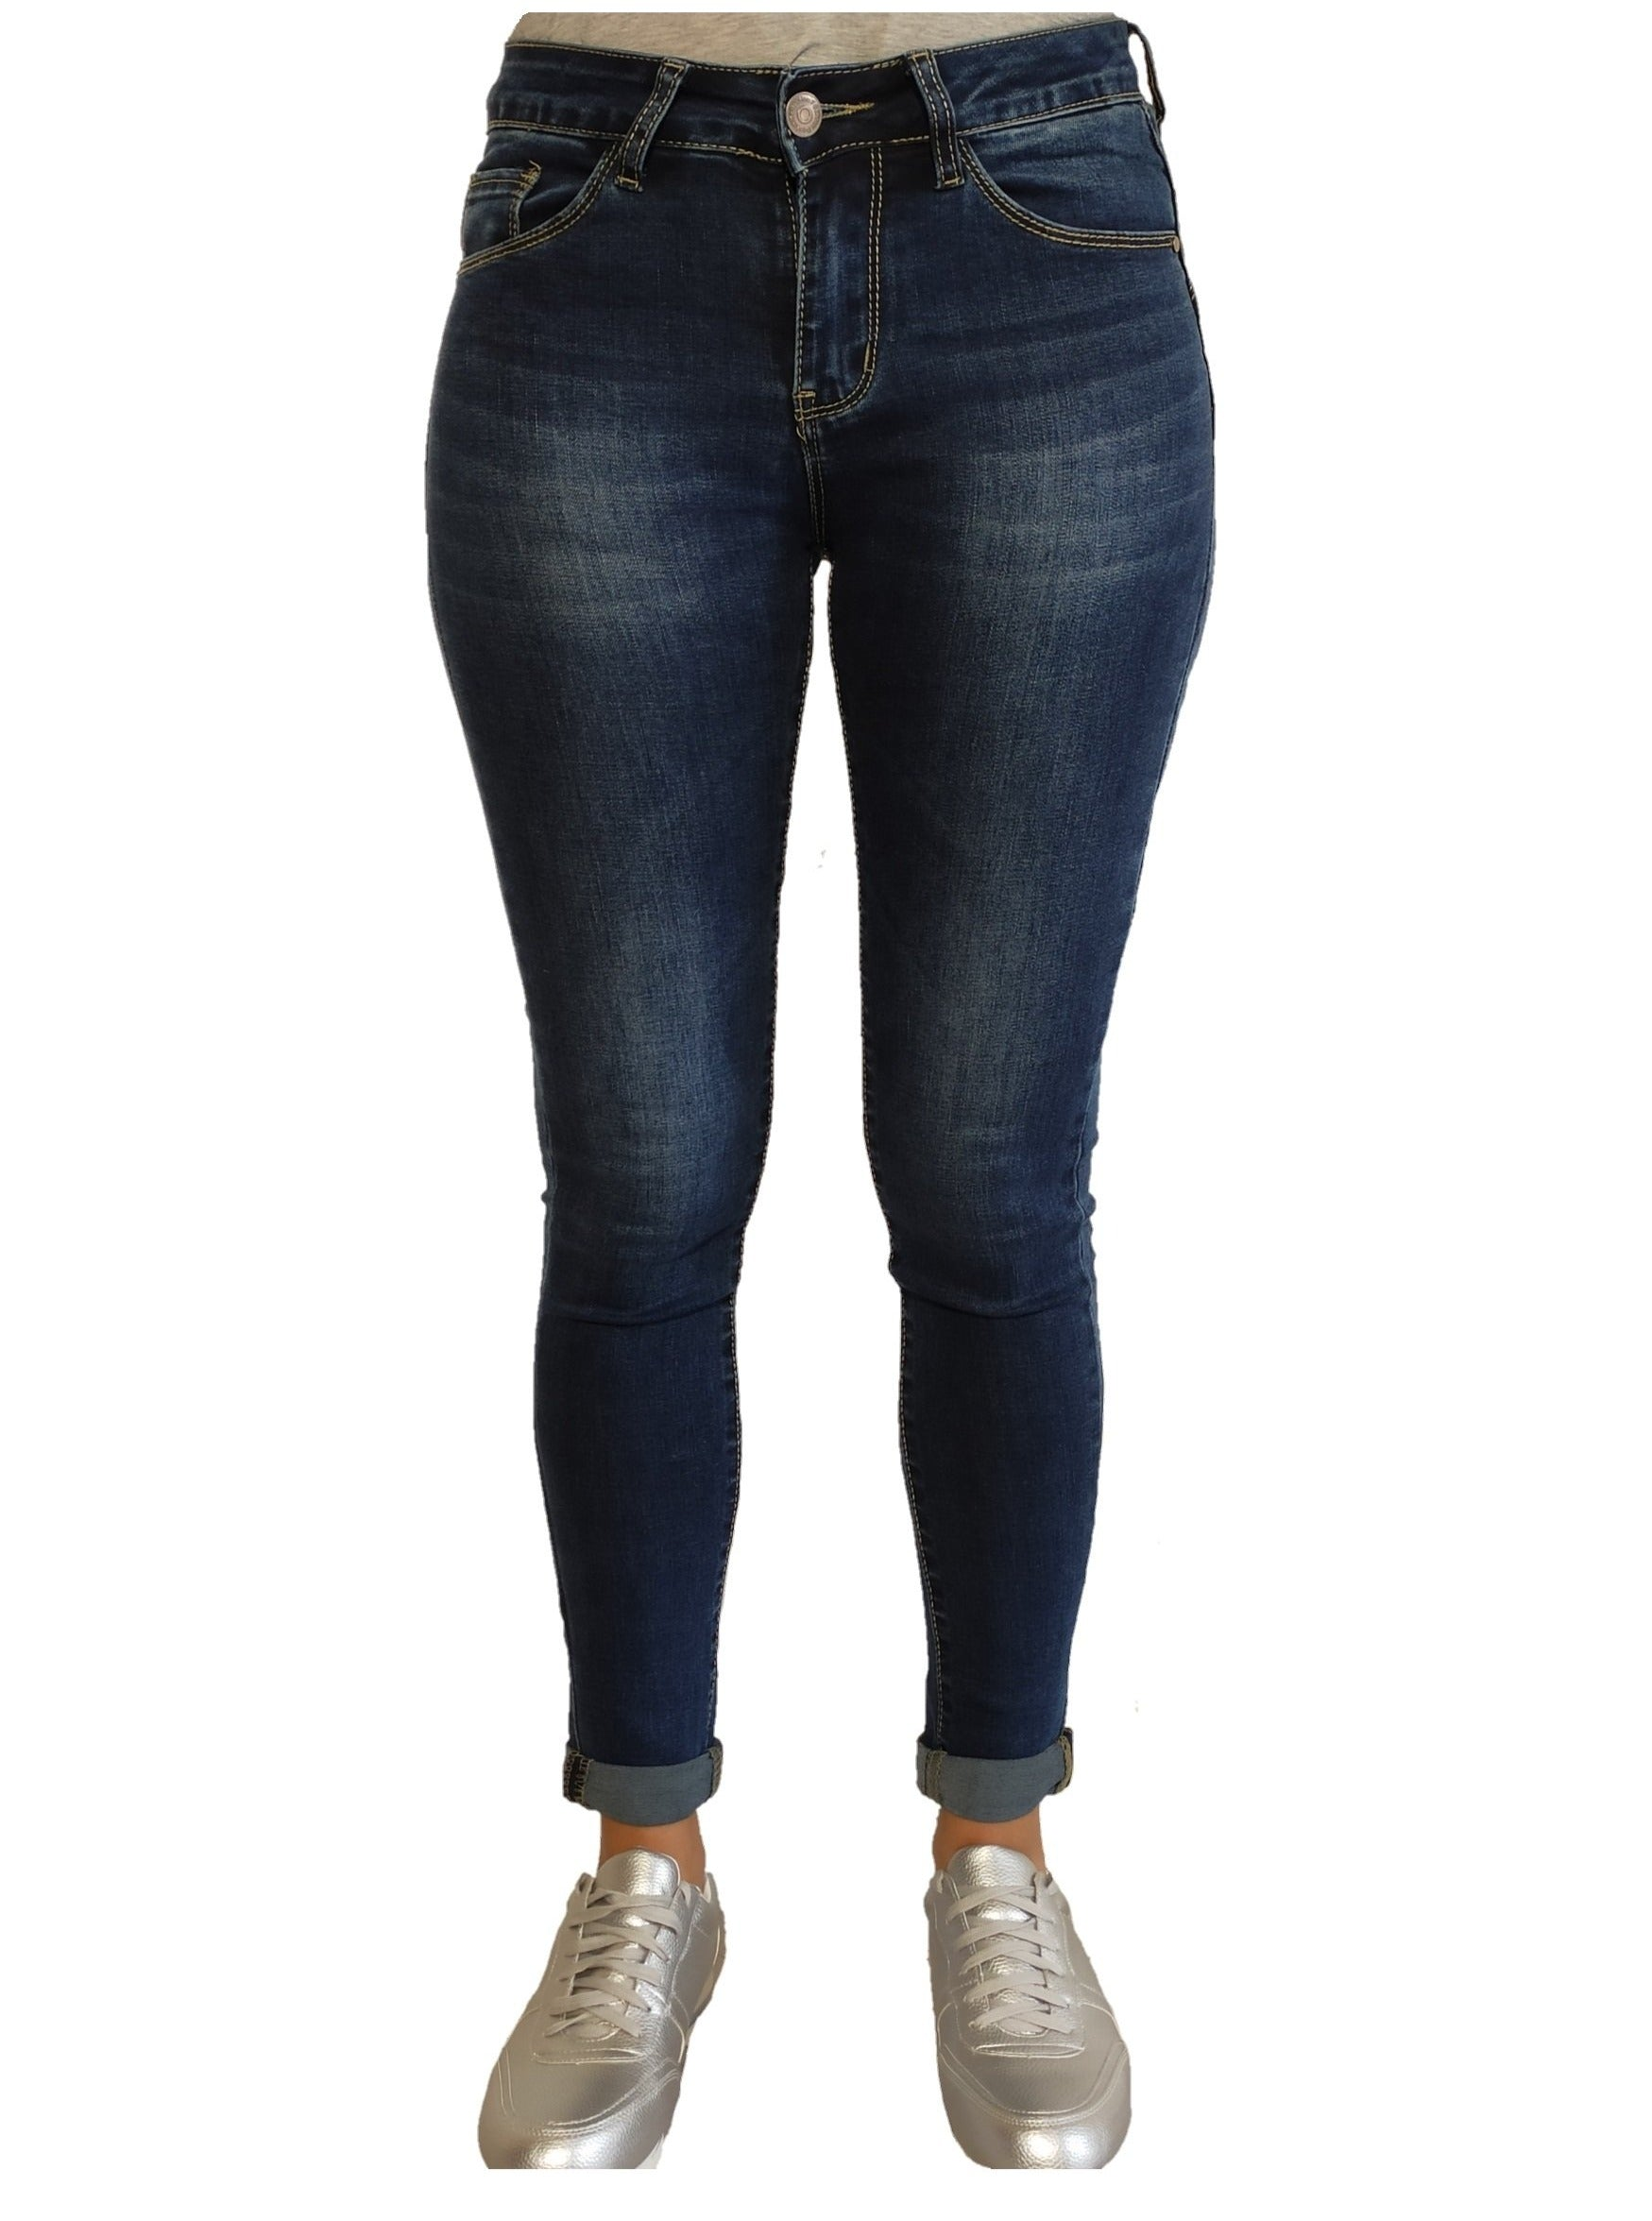 a-woman-wears-blue-jean-with-pushup-front-side